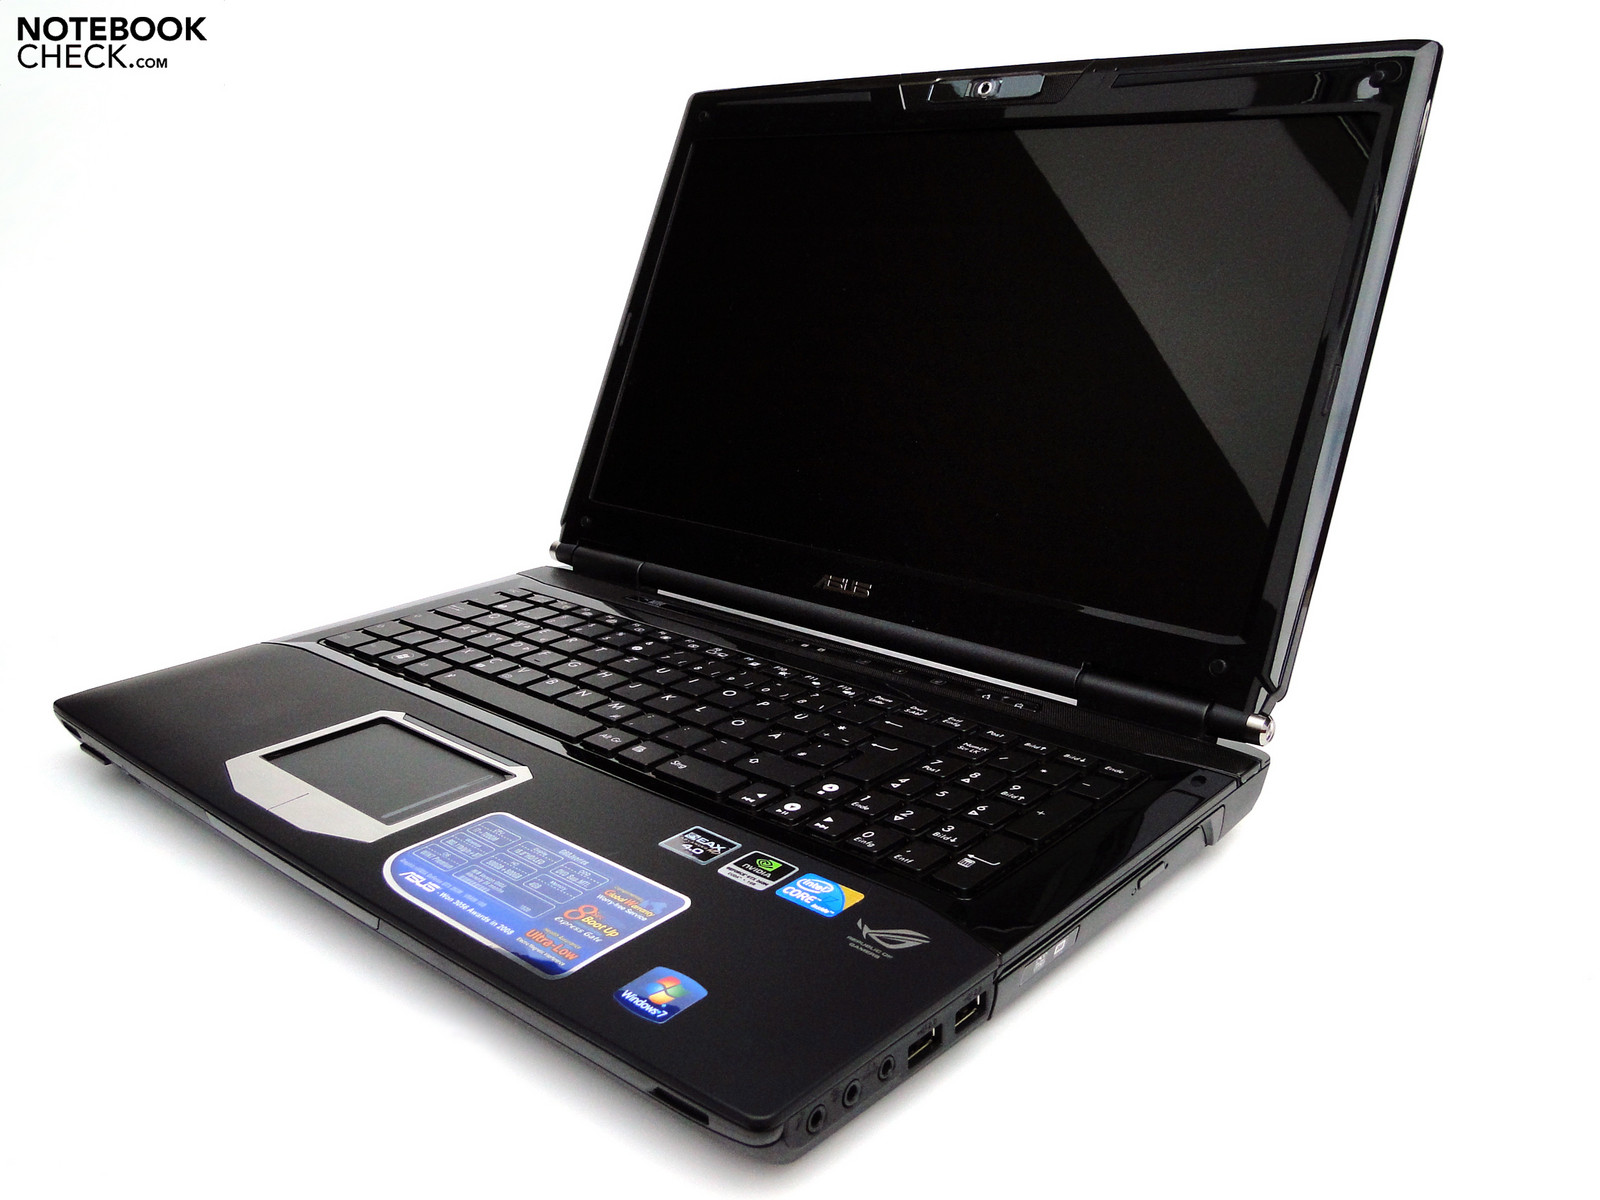 ASUS G60JX NOTEBOOK INTEL INF WINDOWS 7 DRIVERS DOWNLOAD (2019)